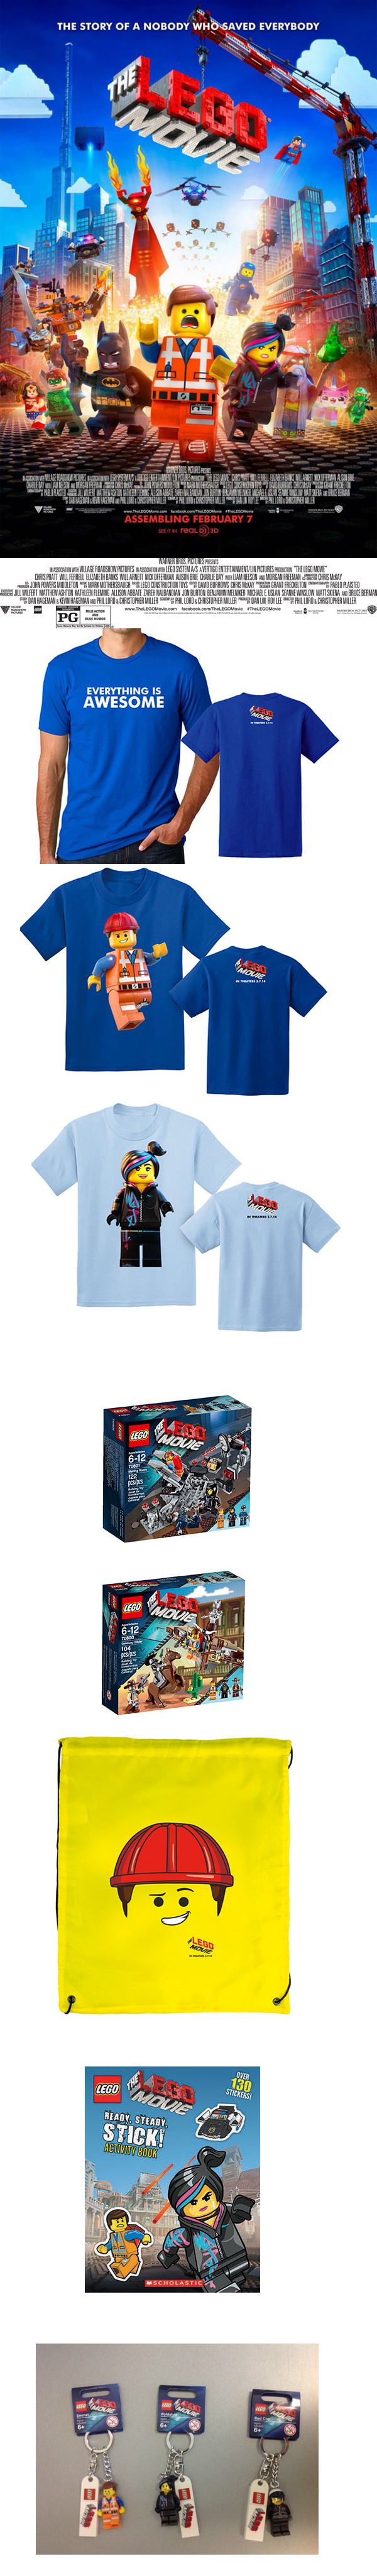 the-lego-movie-giveaway